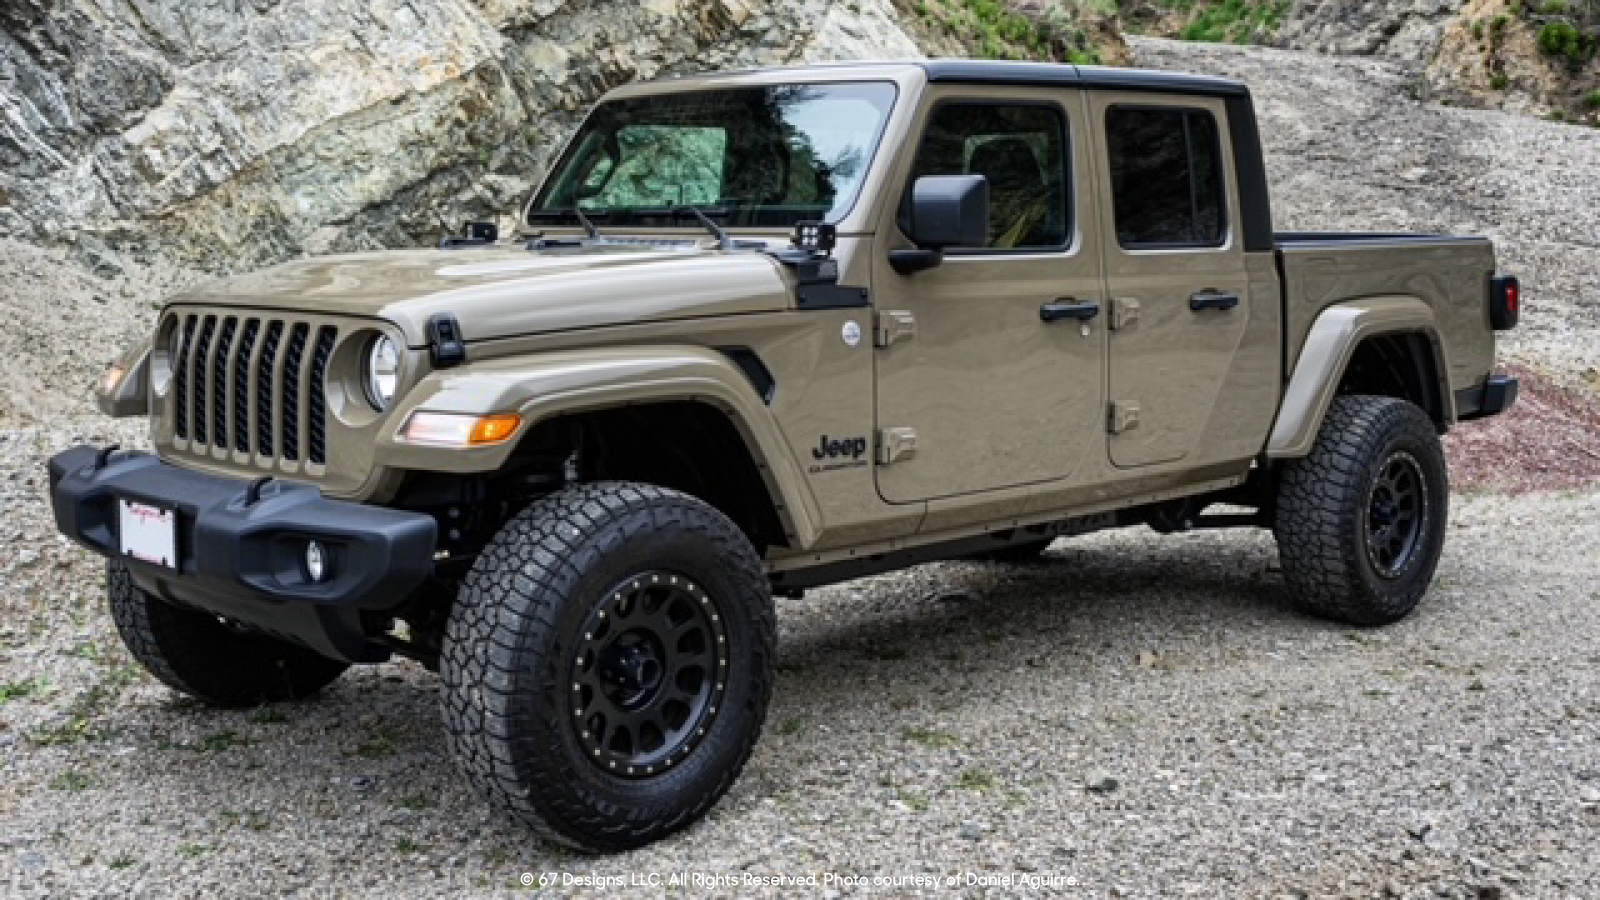 Jeep Gladiator posing for a photo